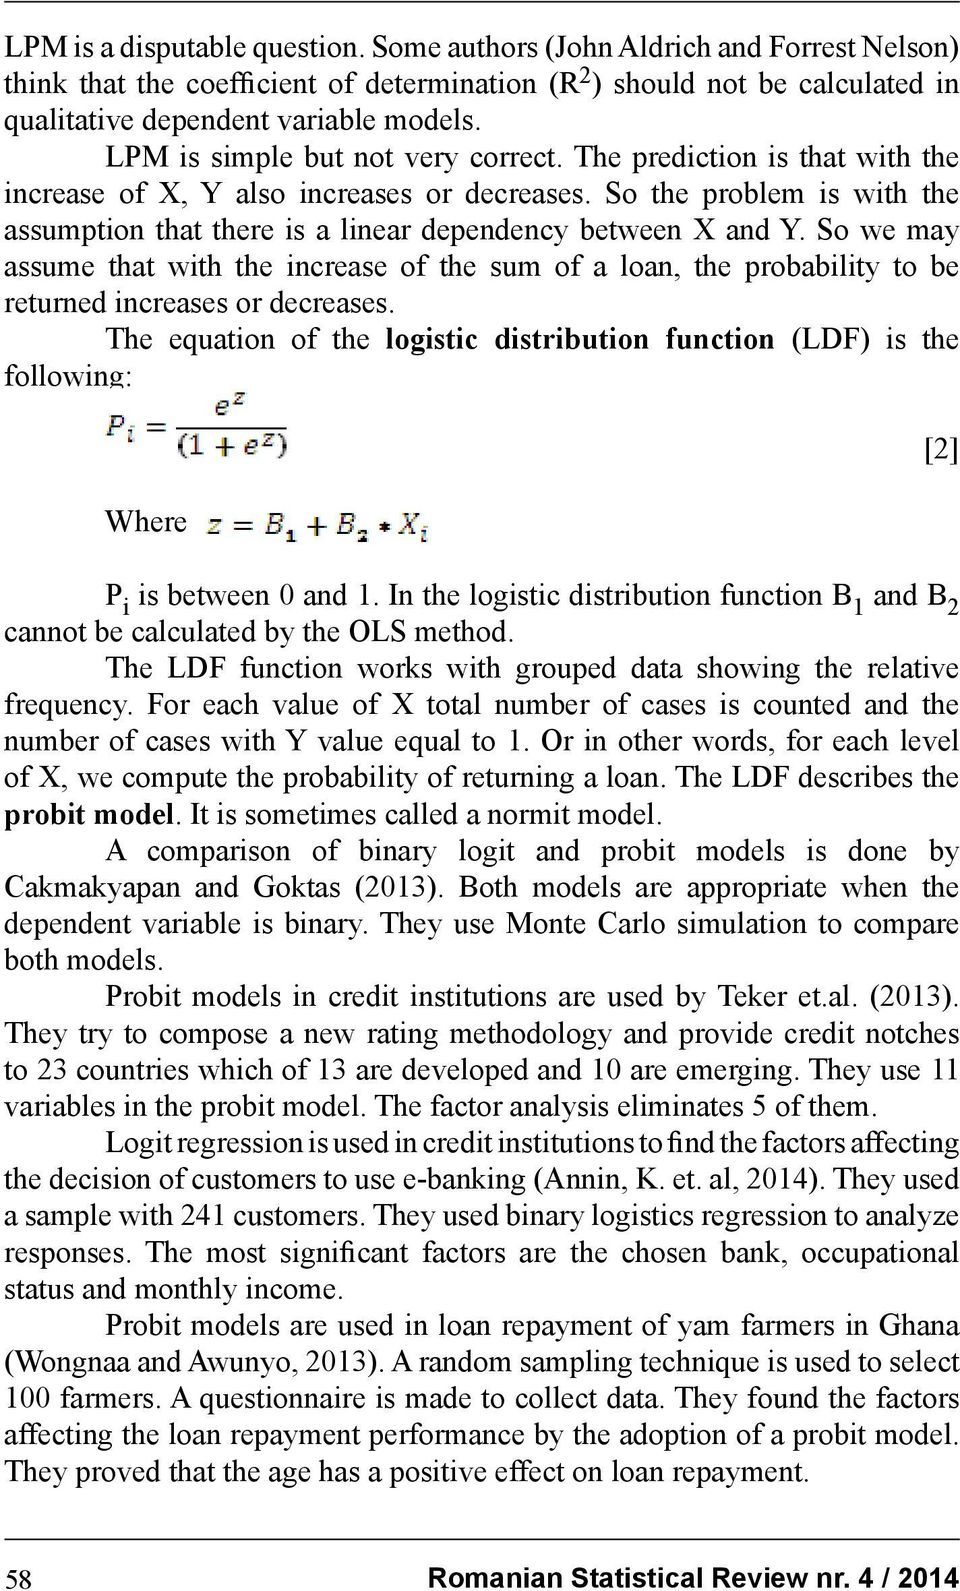 So the problem is with the assumption that there is a linear dependency between X and Y.